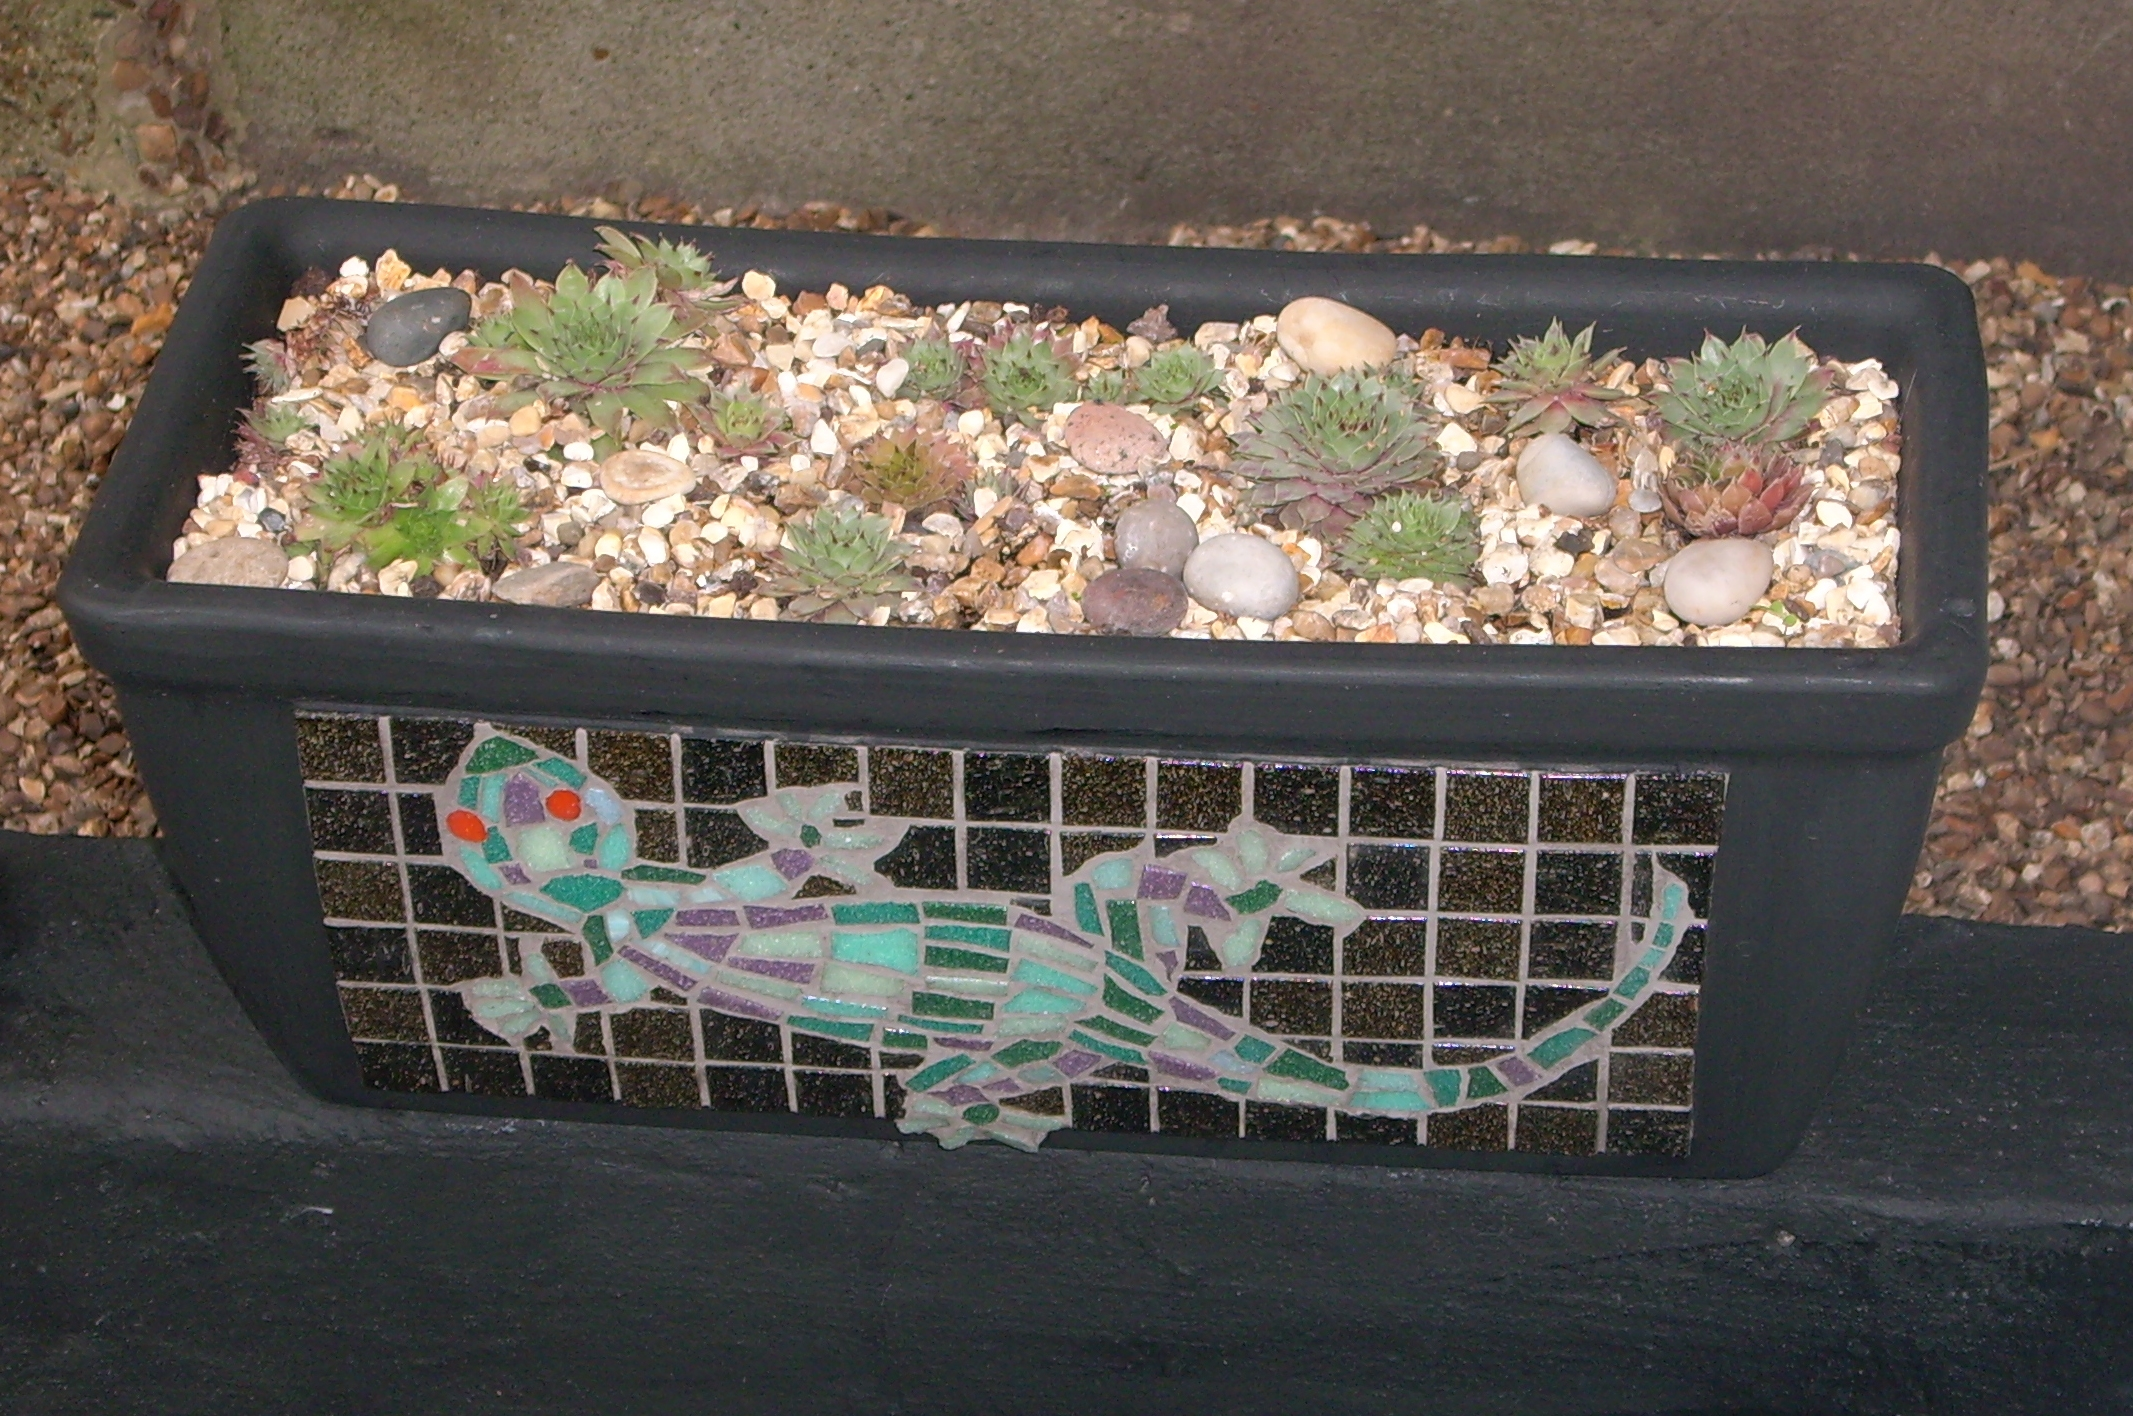 Lizard Trough